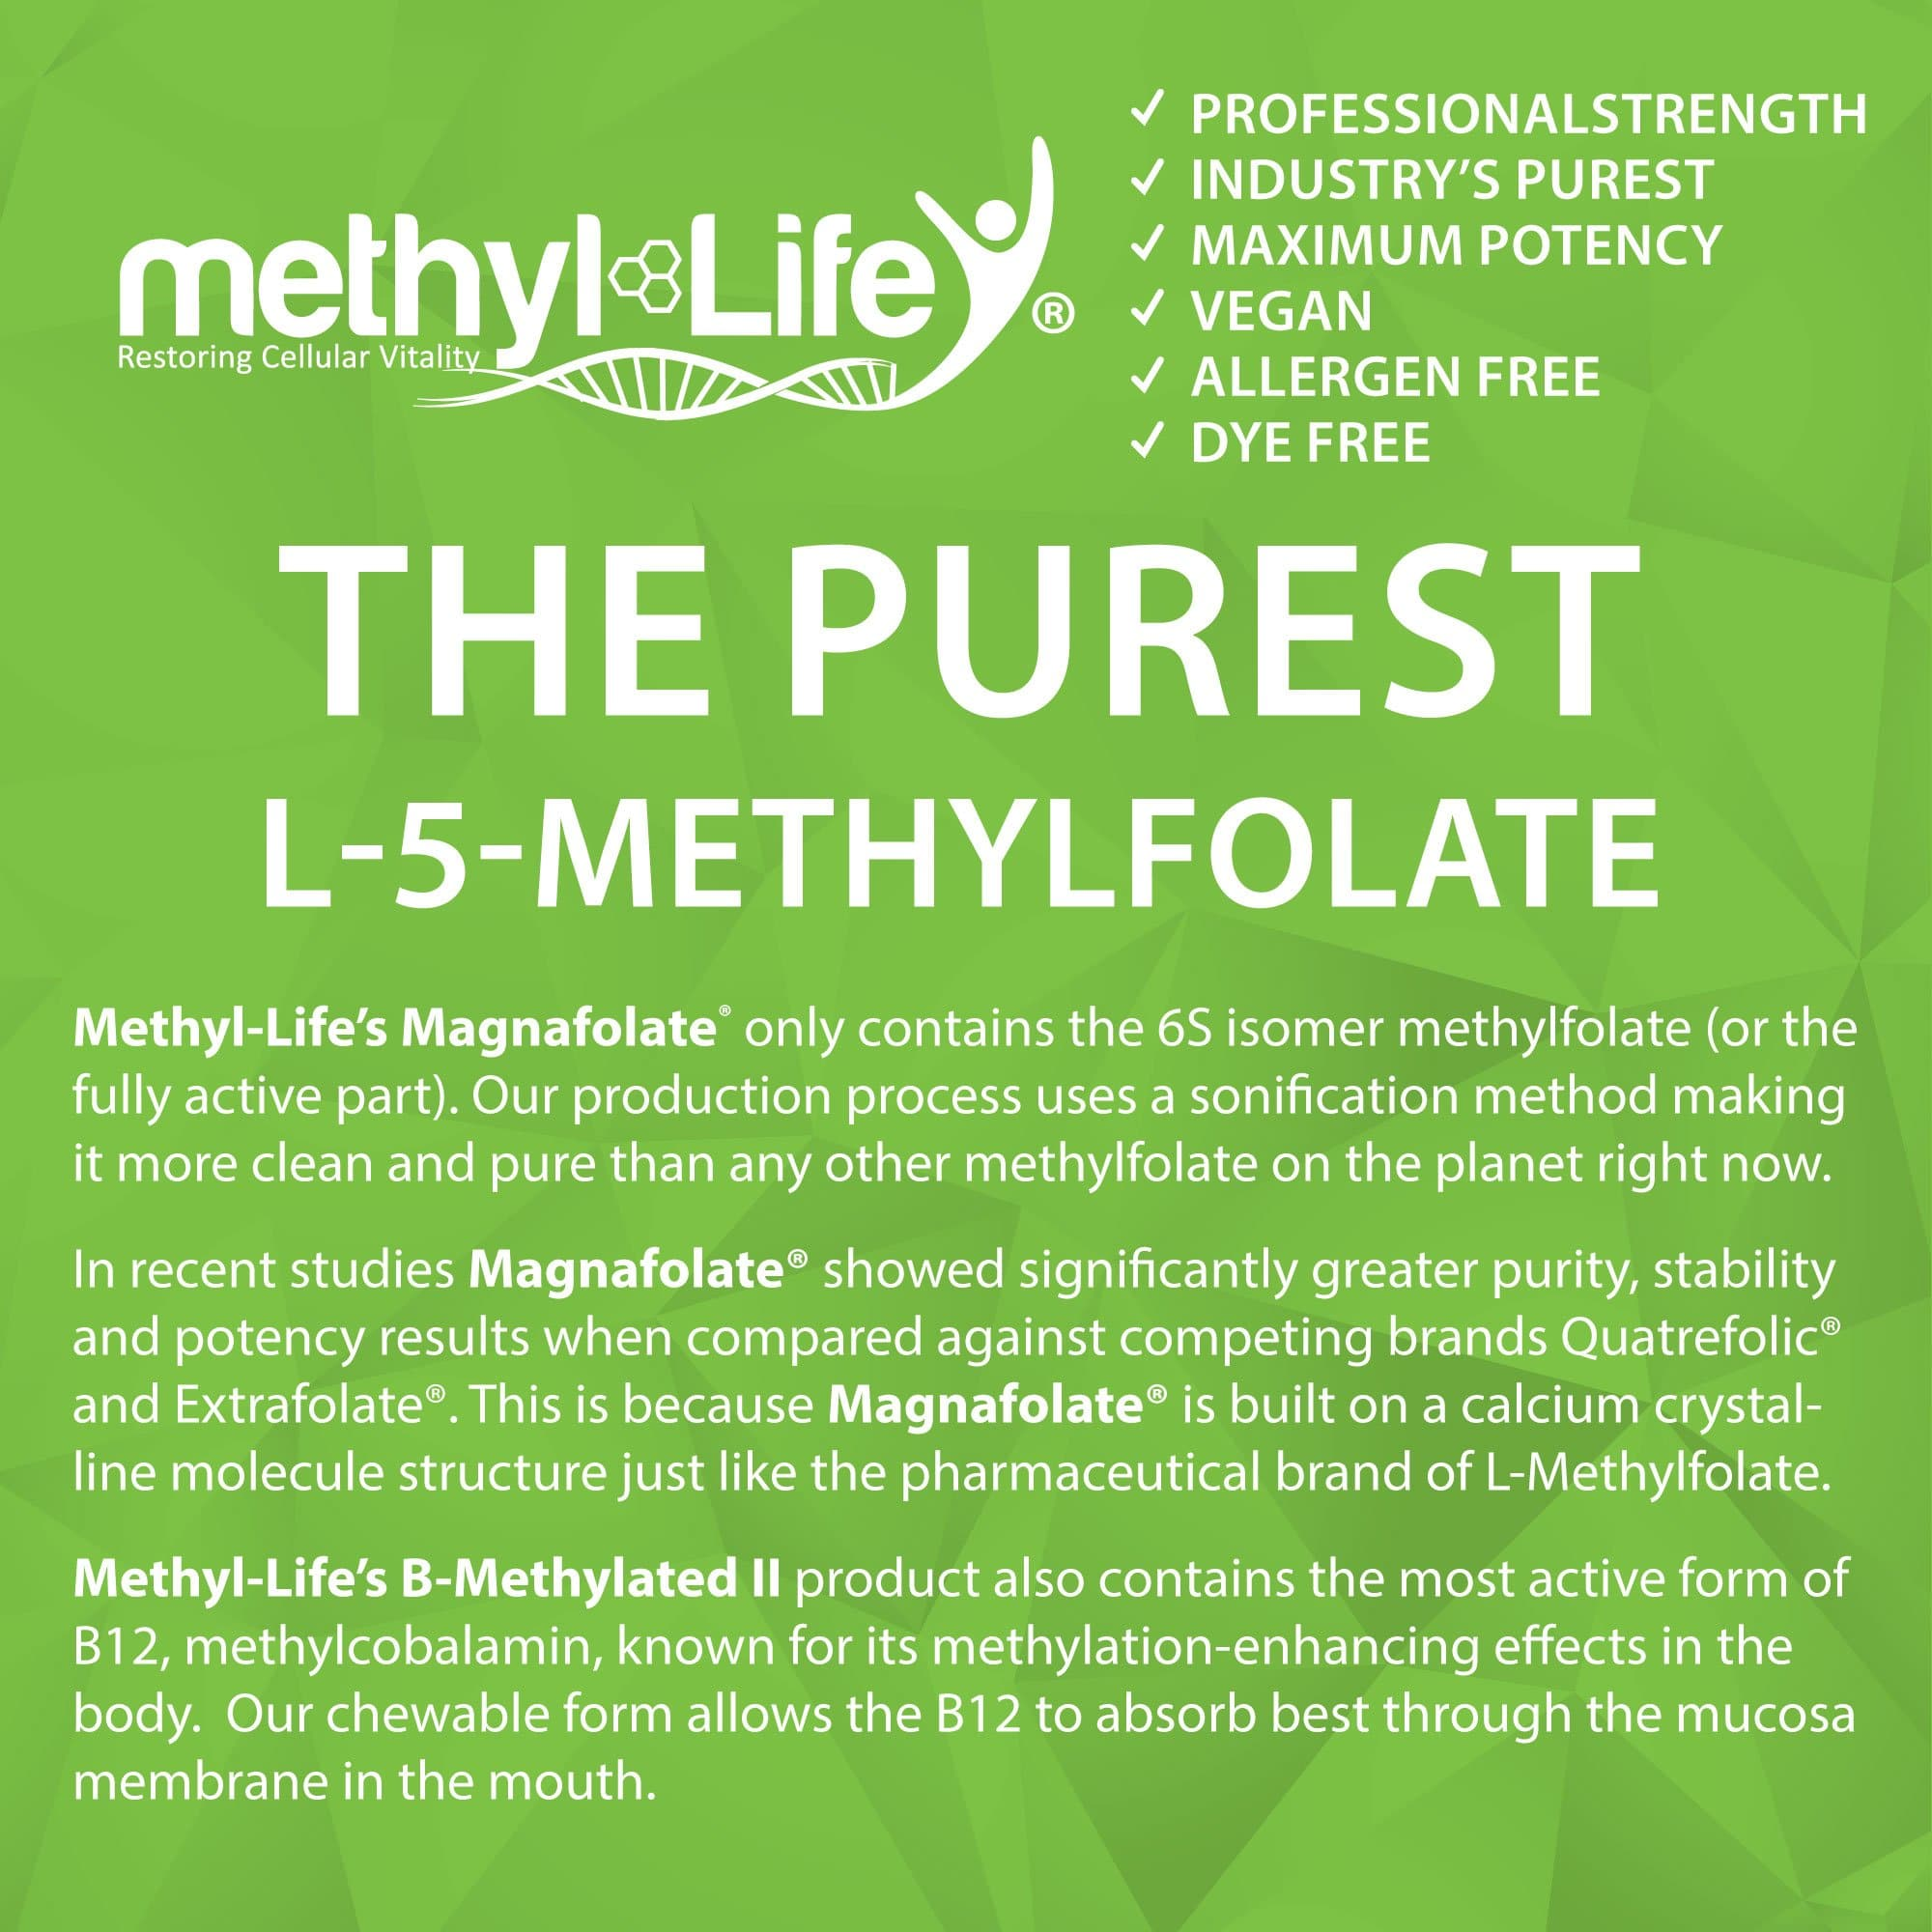 b methylated (the purest l-5-methylfolate)